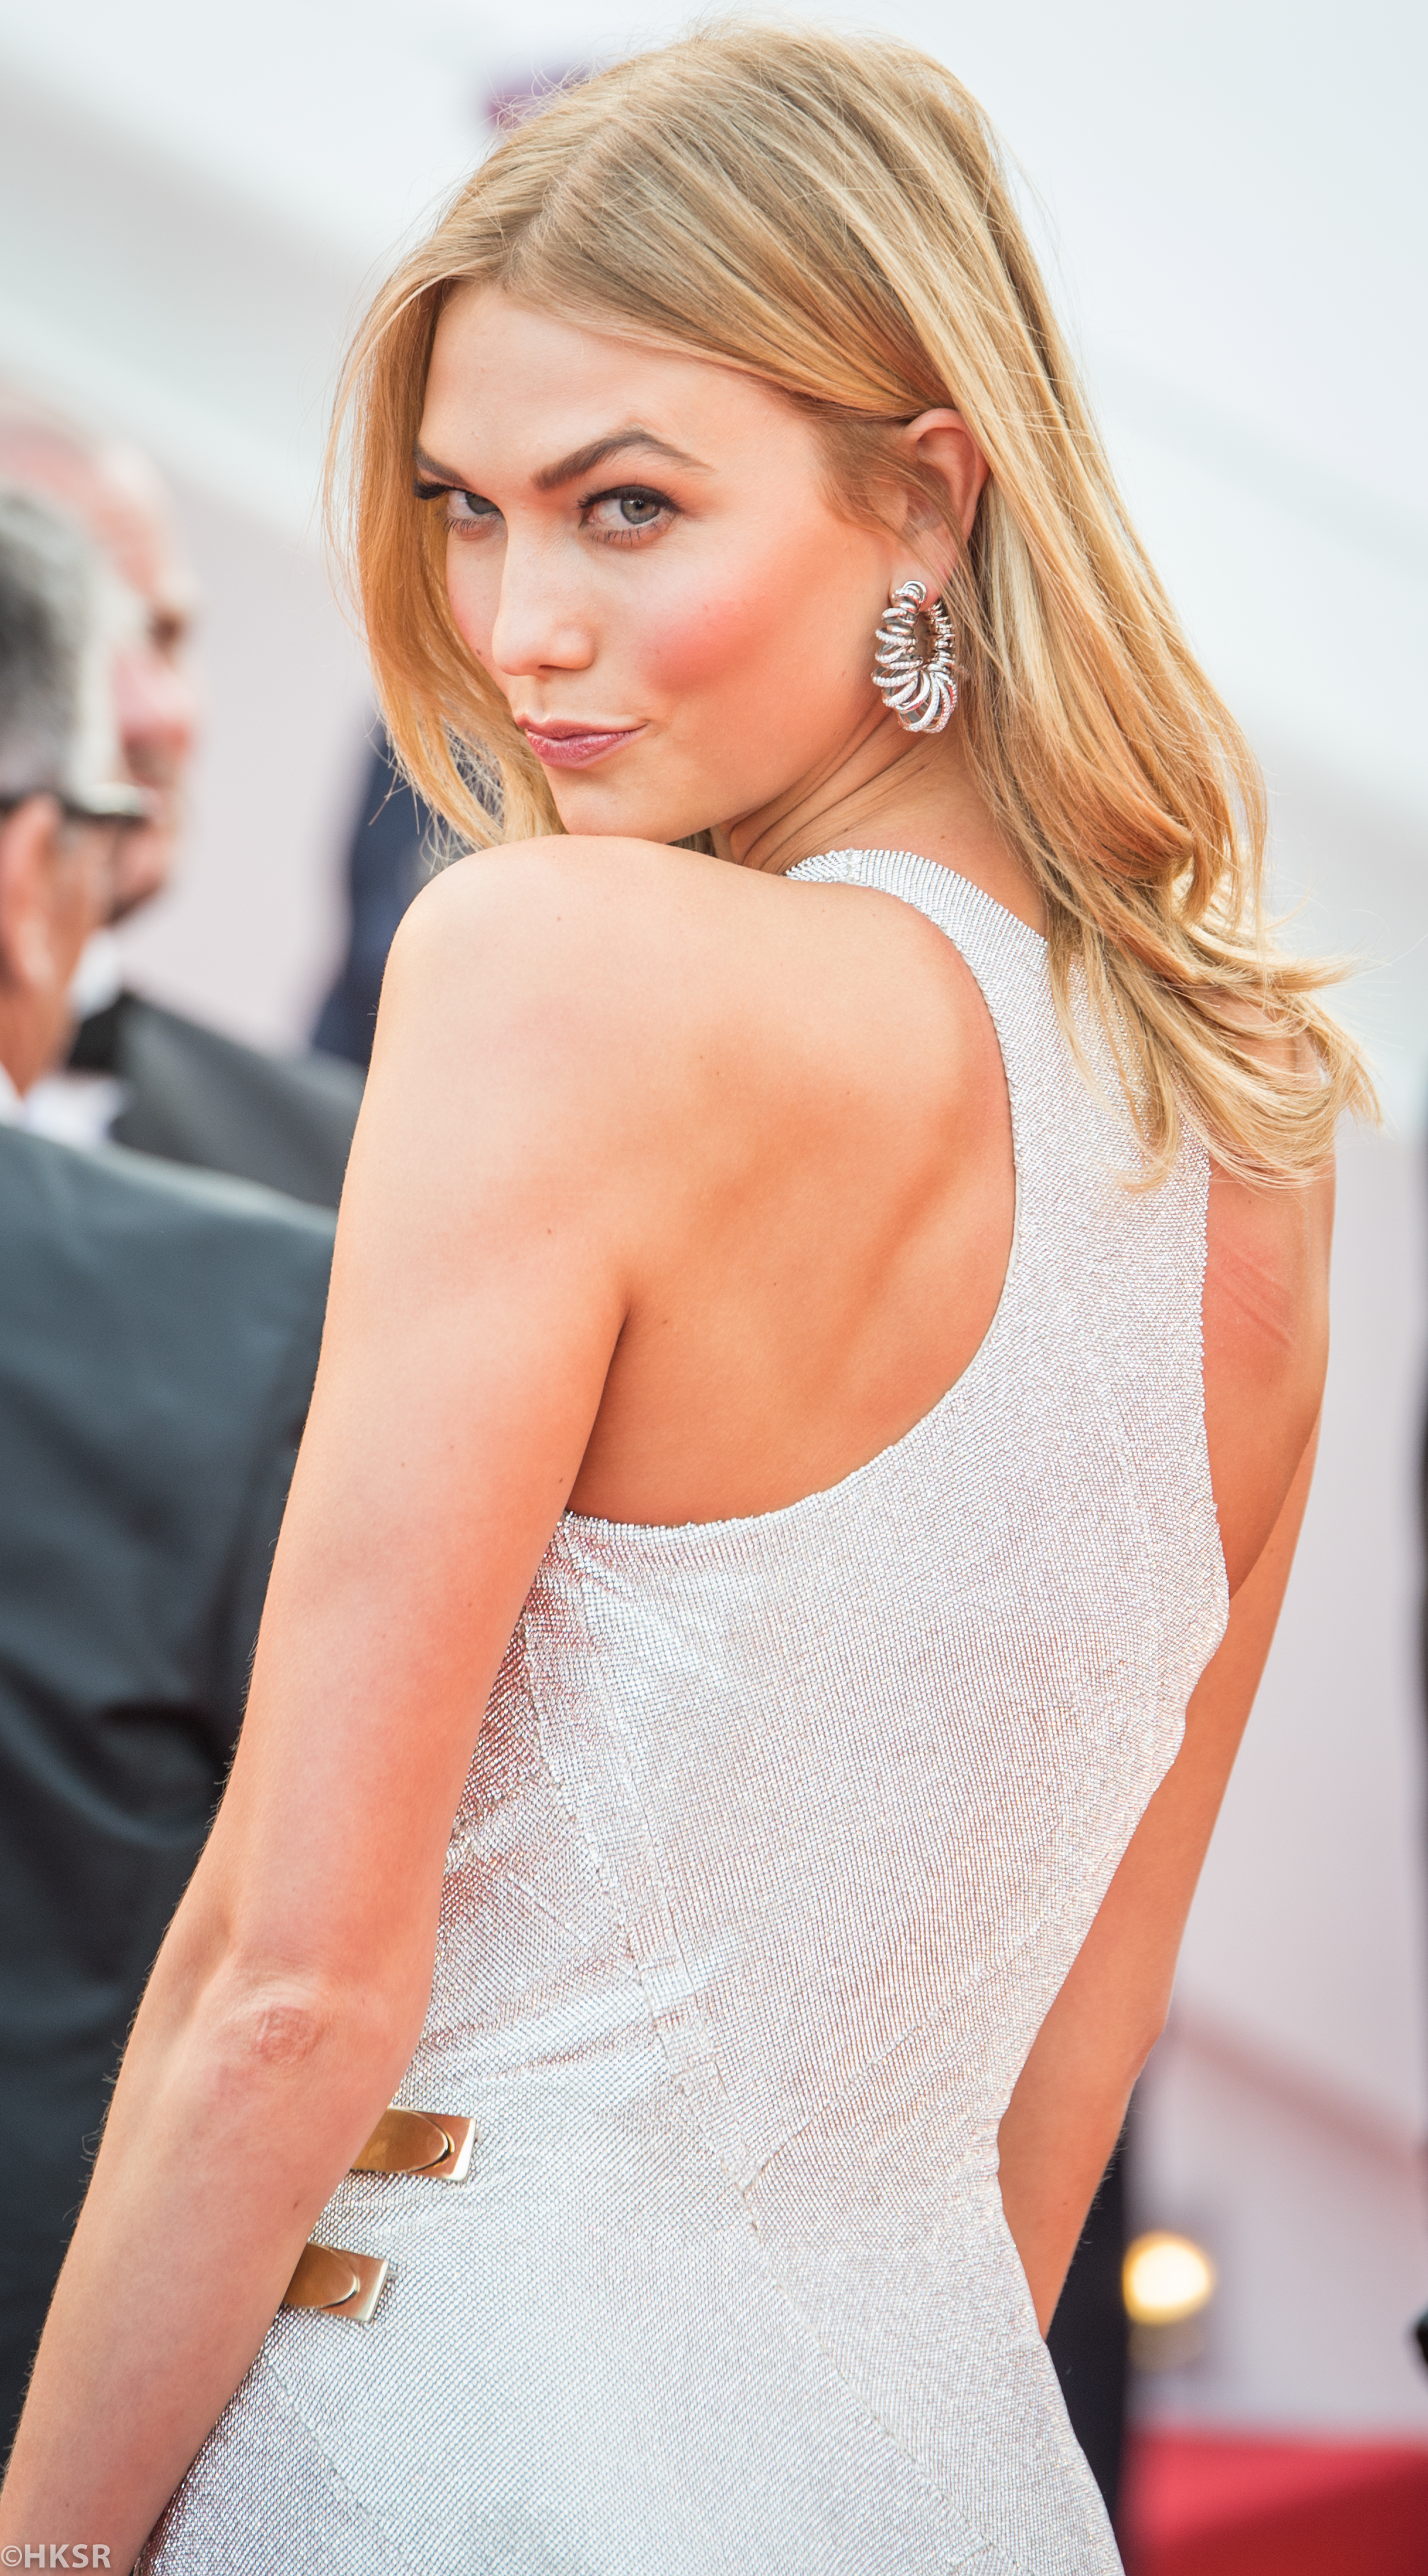 Karlie Kloss looked amazing on the red carpet at Cannes 2015